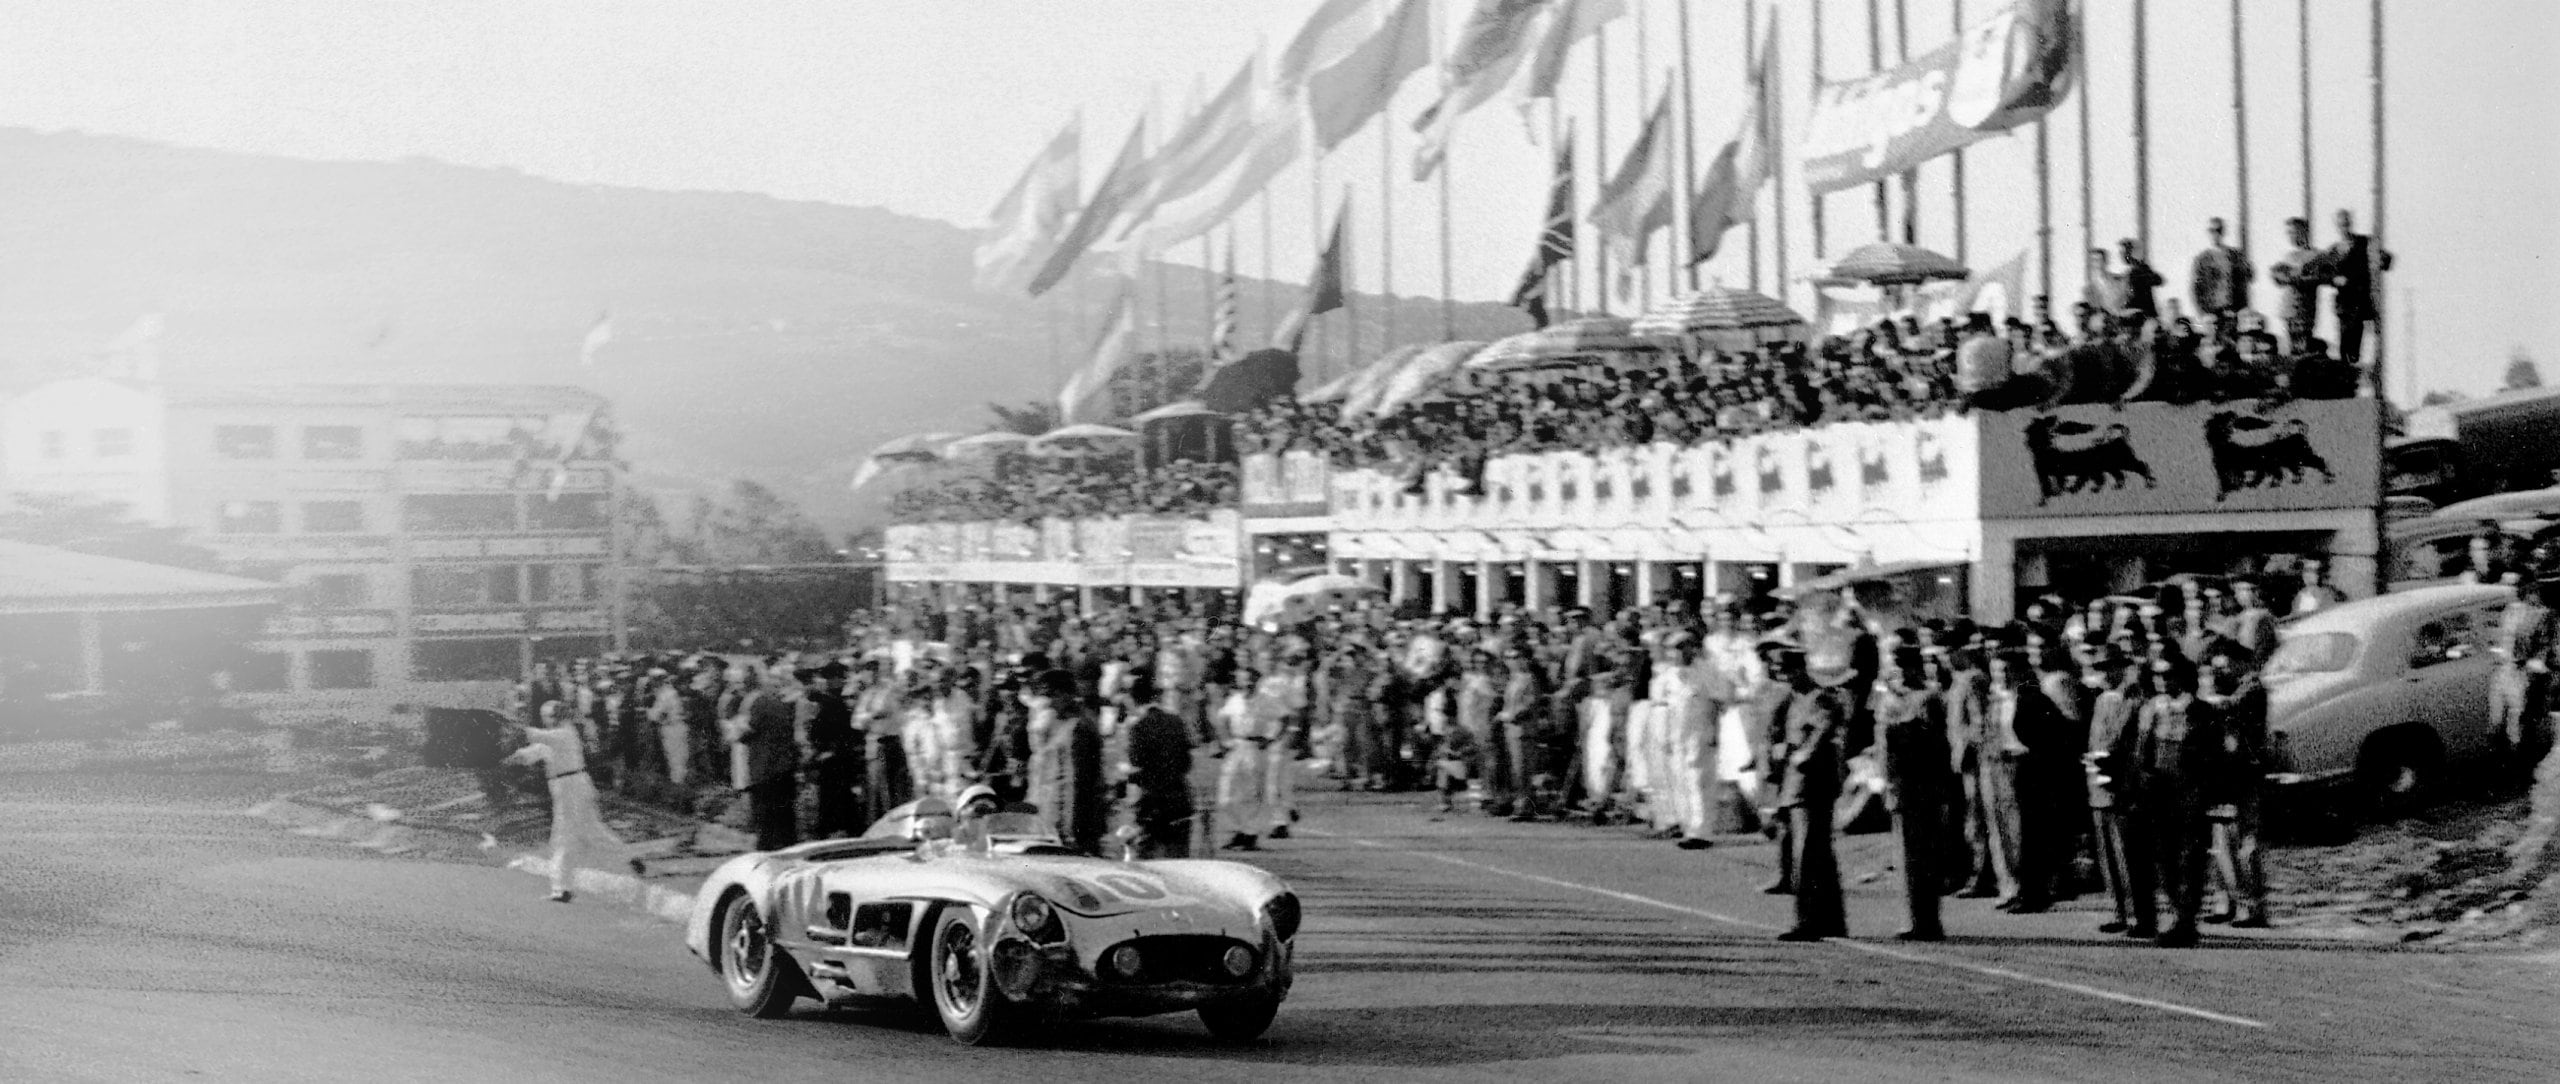 Stirling Moss in the Mercedes-Benz 300 SLR racing sports car with start number 104 winning the 1955 Targa Florio.